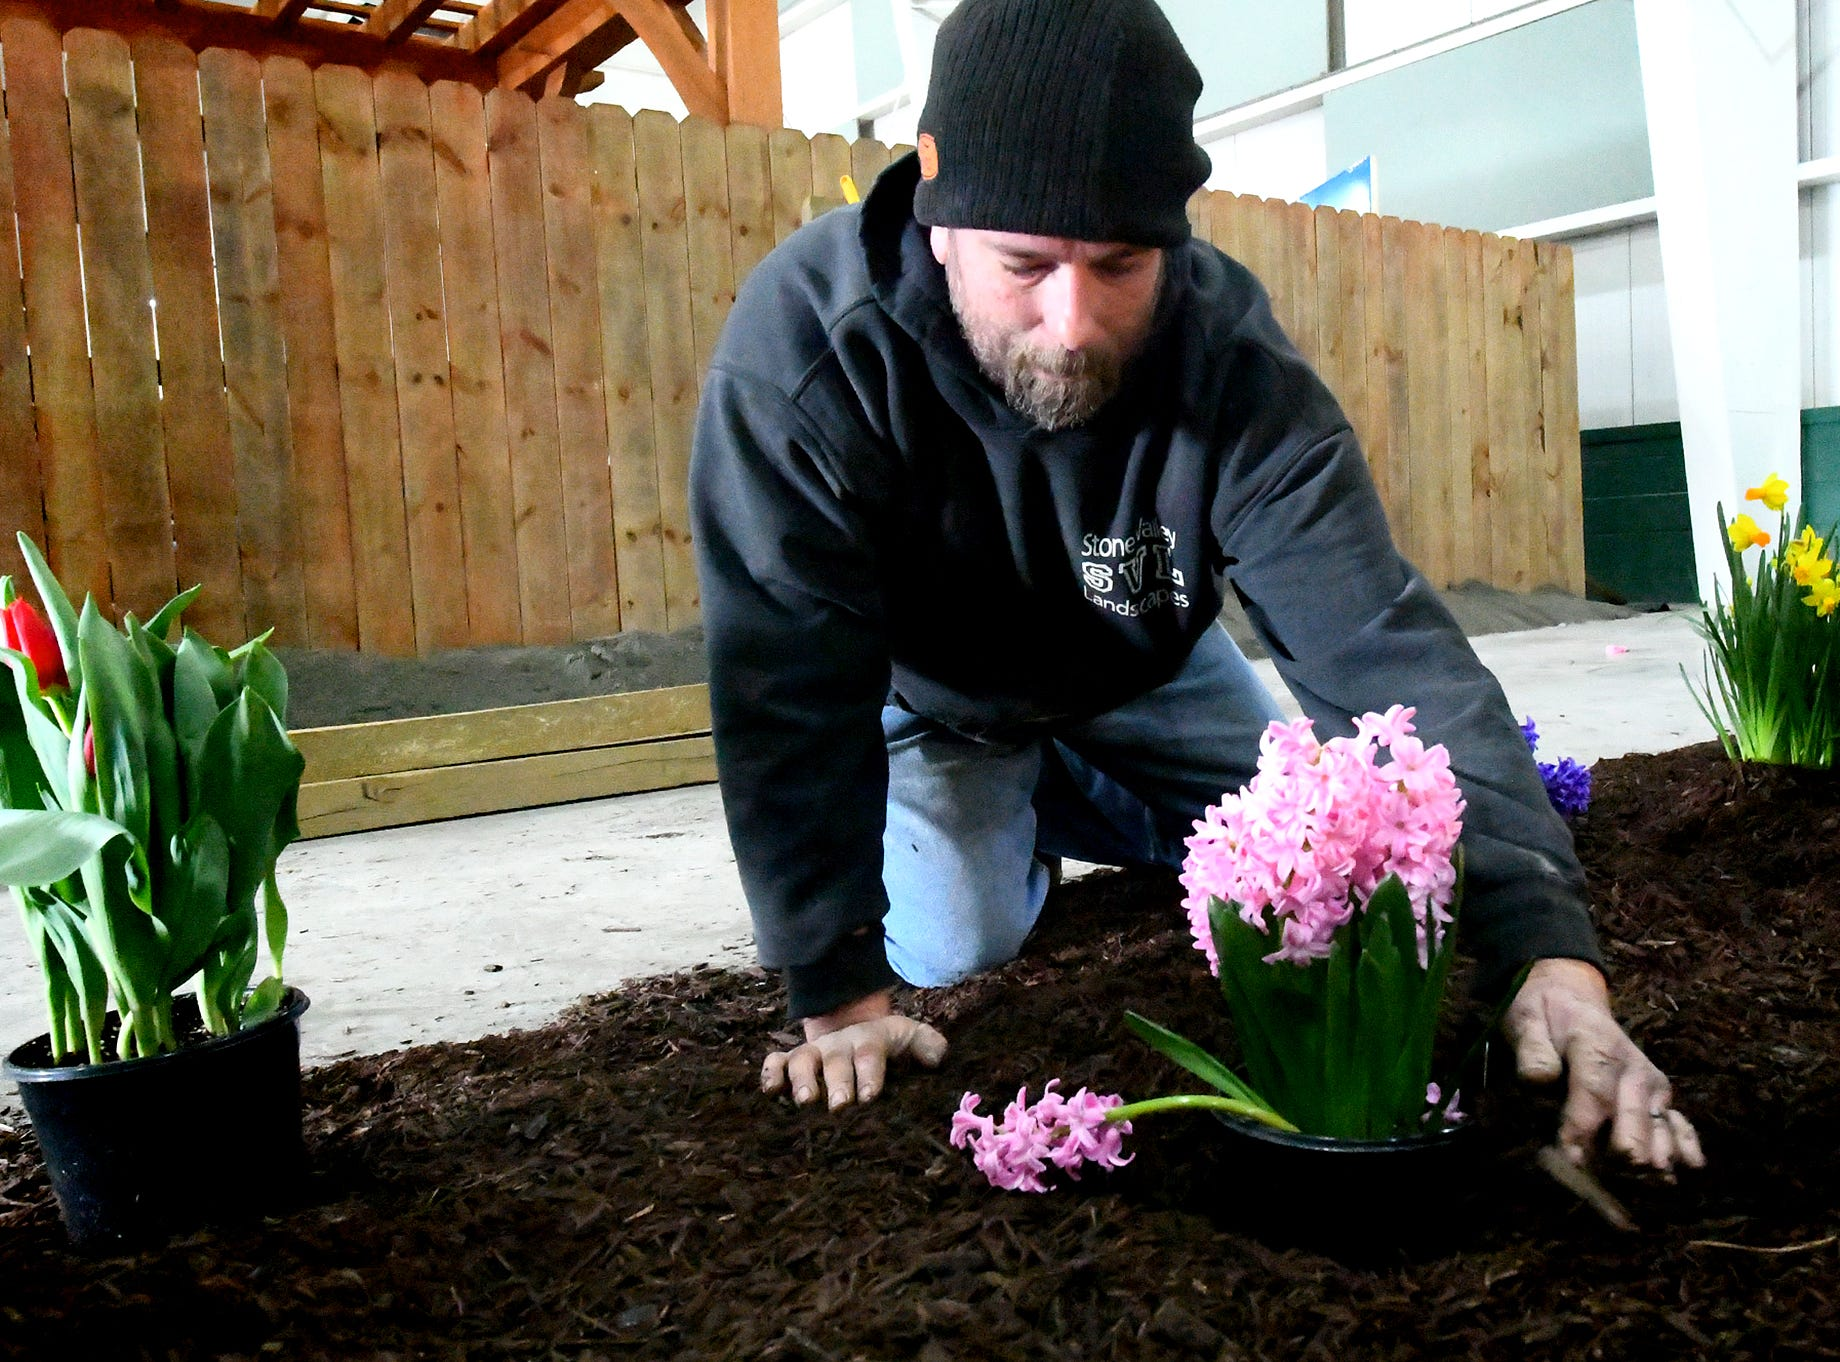 """James Trich of Stone Valley Landscapes places a hyacinth in a garden at the company's exhibit at the PA Garden Show of York Wednesday, Feb. 27, 2019. The show, themed """"Flowers on Parade,"""" is in Memorial Hall at the York Expo Center March 1-3. Hours Friday and Saturday are 10 a.m. to 8 p.m., and Sunday 10 a.m. to 5 p.m. Admission for adults is $10. Children are free with multi-day passes and and senior discounts offered. Bill Kalina photo"""